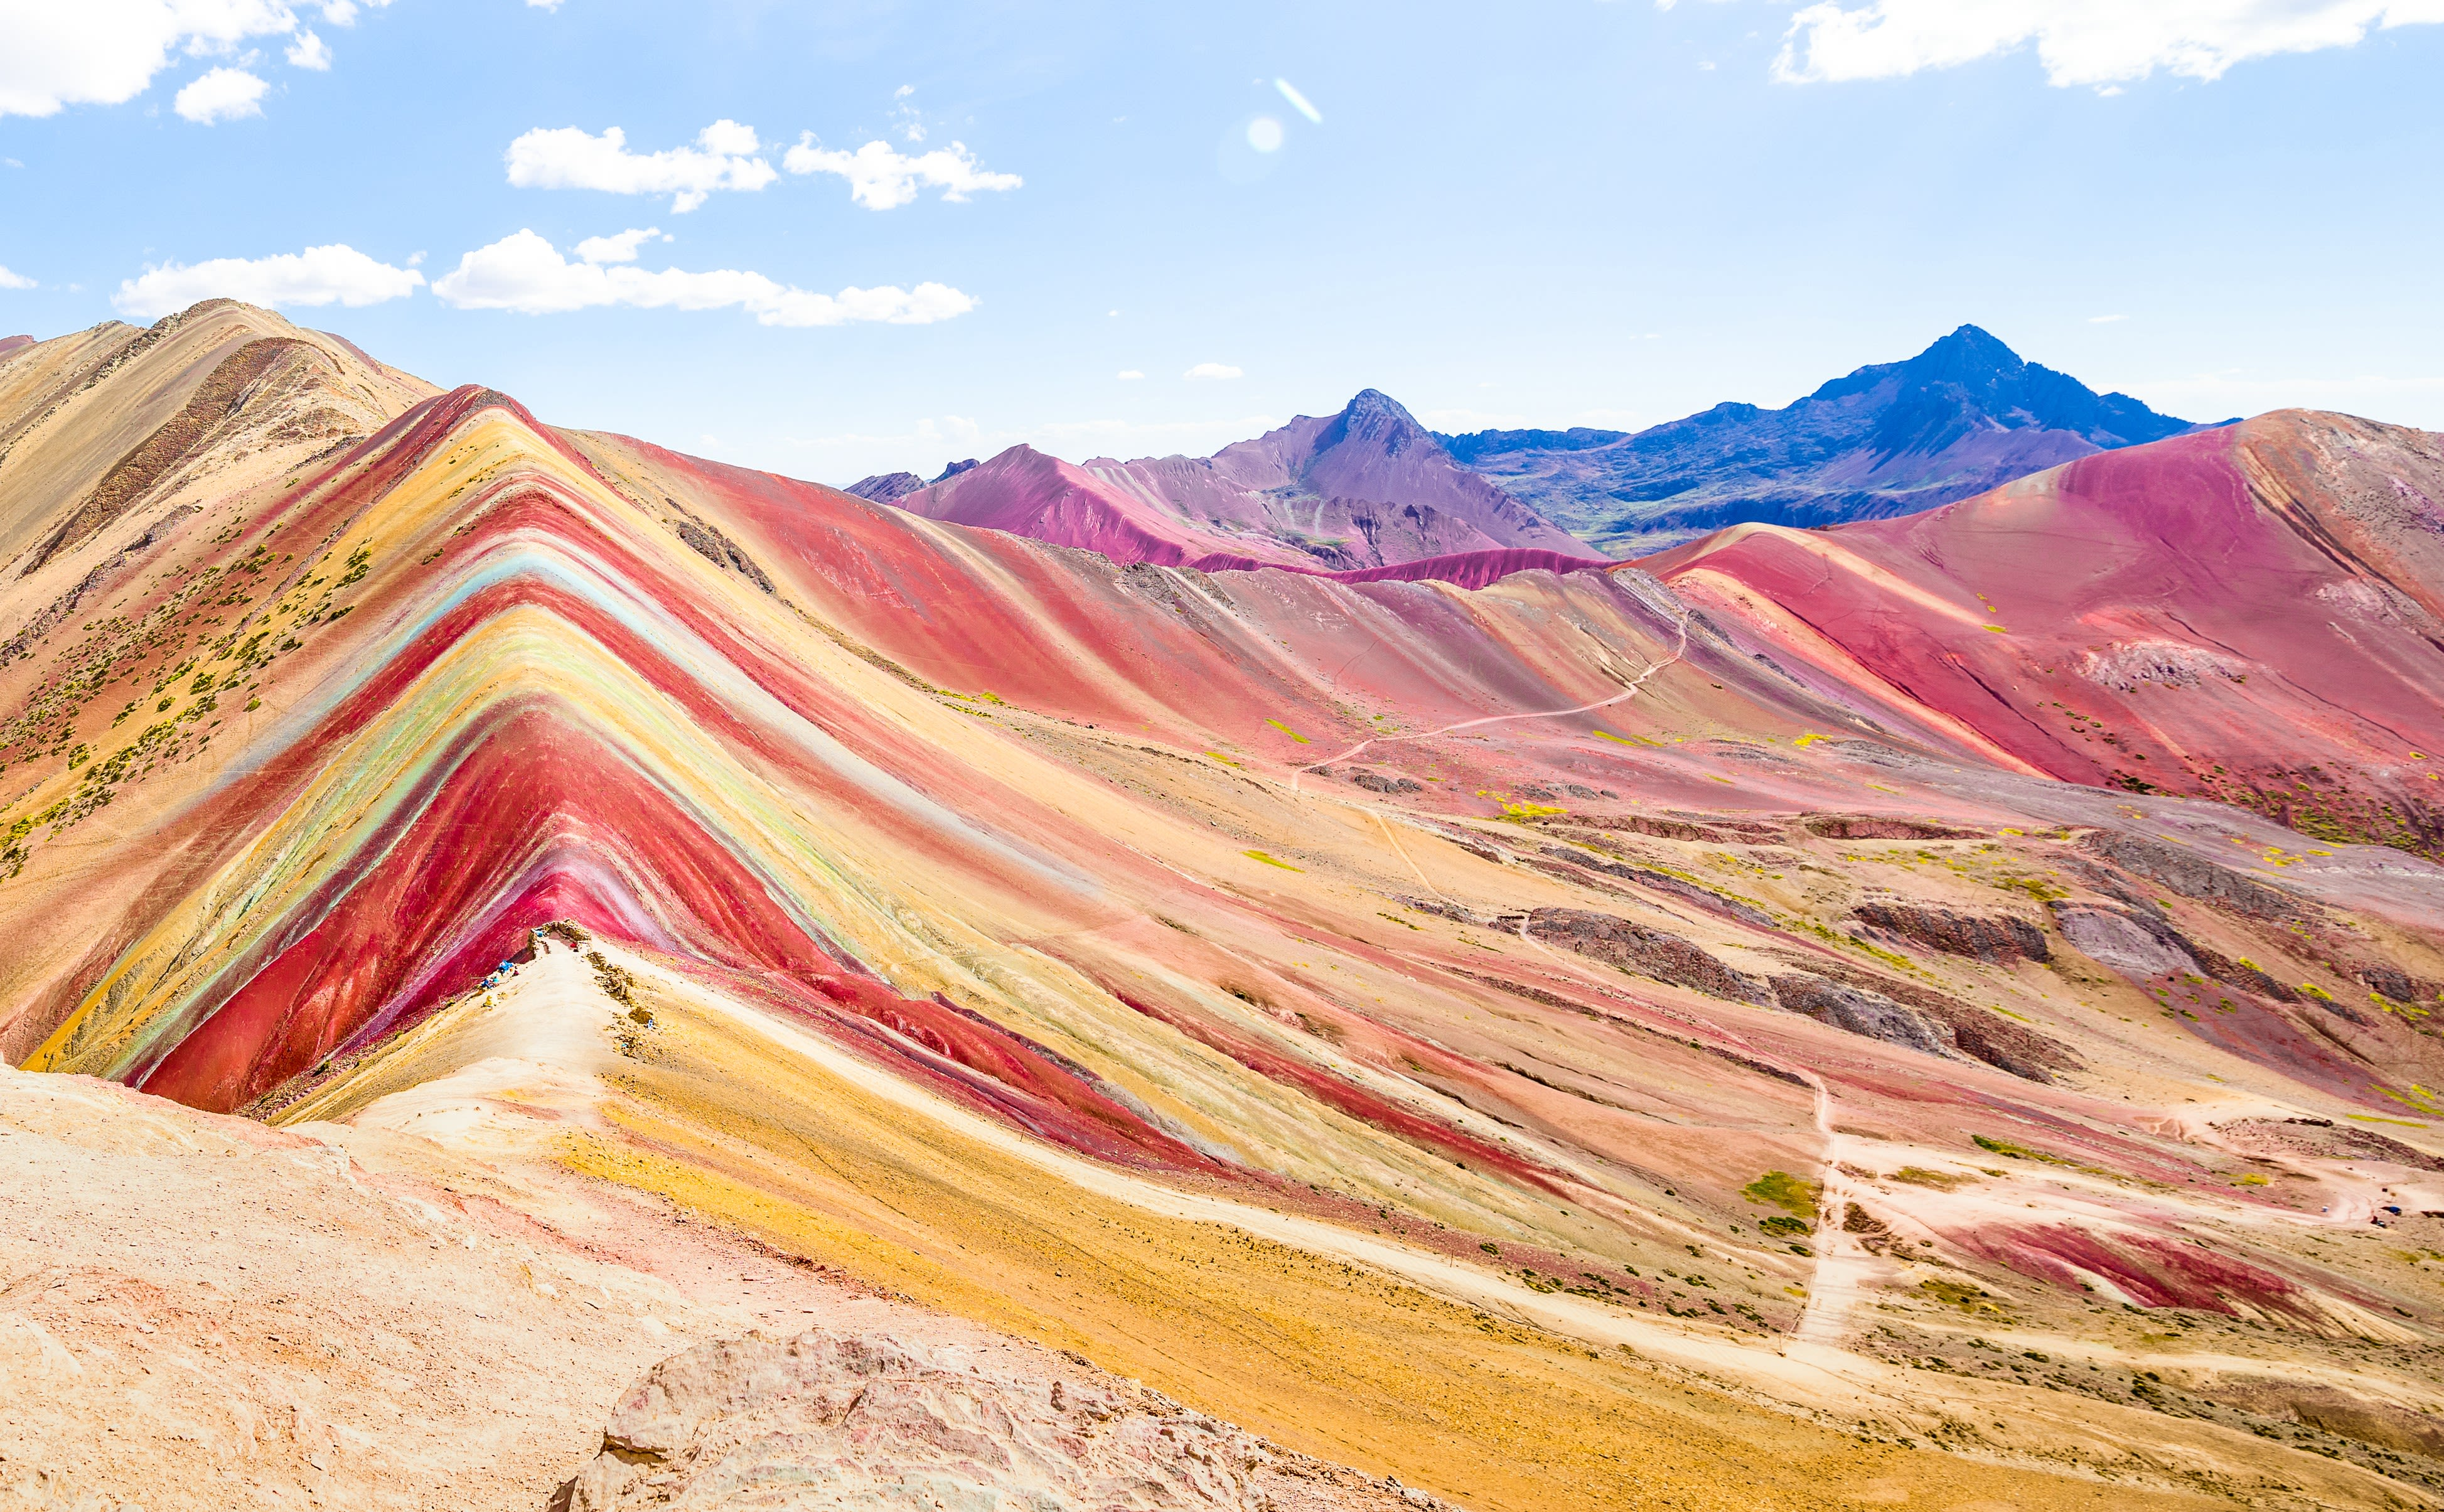 Instagrammers rave about Peru's 'Rainbow Mountain'. Here's what it really looks like